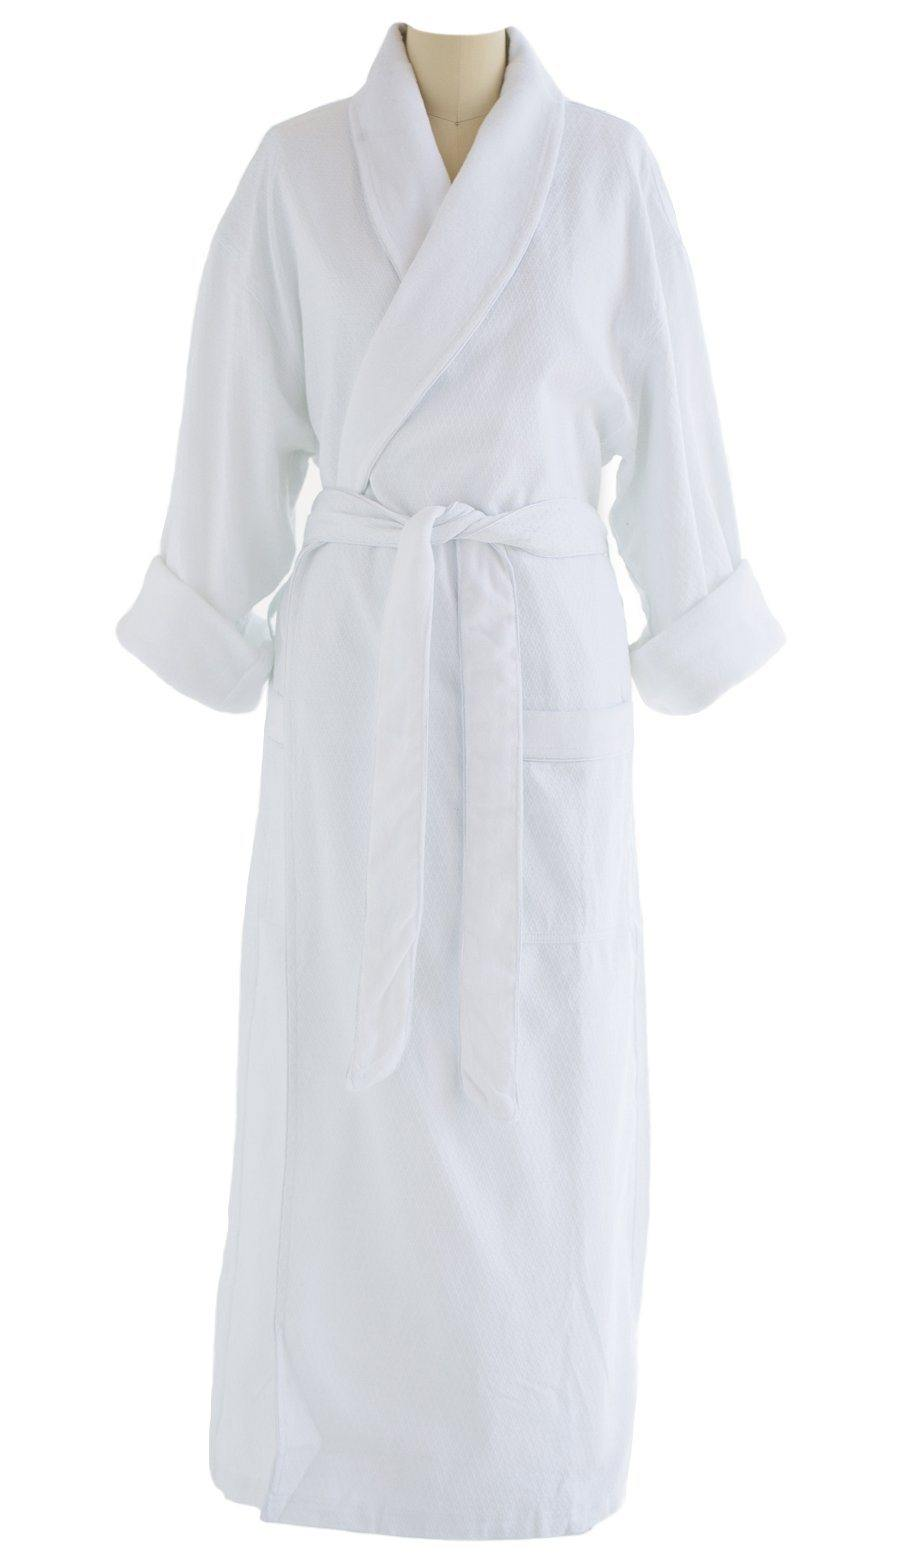 Diamond Jacquard Shawl Design Robe | Style: DJT7000 White